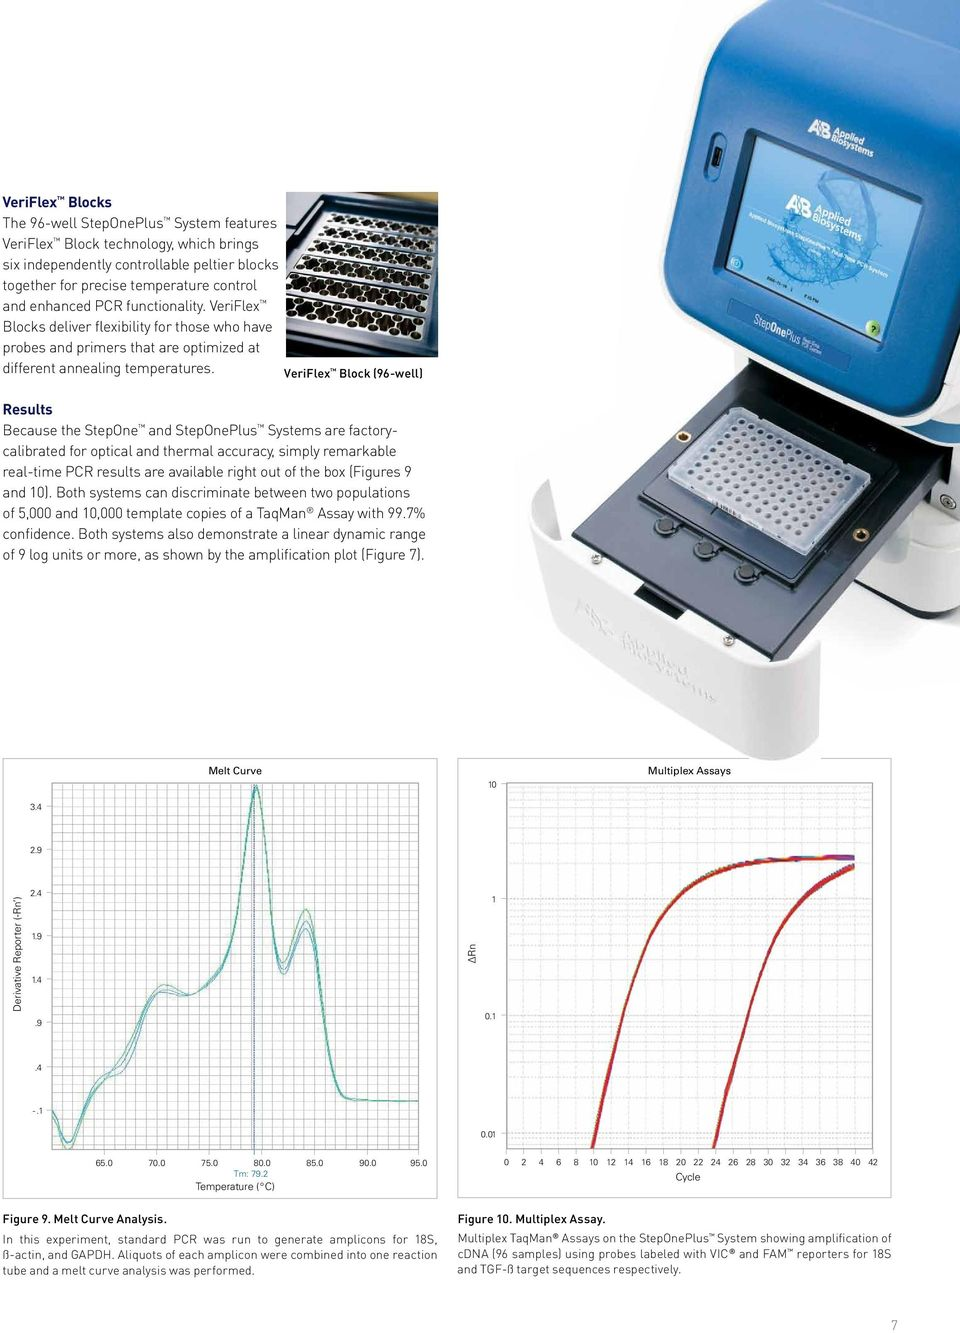 VeriFlex Block (96-well) Results Because the StepOne and StepOnePlus Systems are factorycalibrated for optical and thermal accuracy, simply remarkable real-time PCR results are available right out of